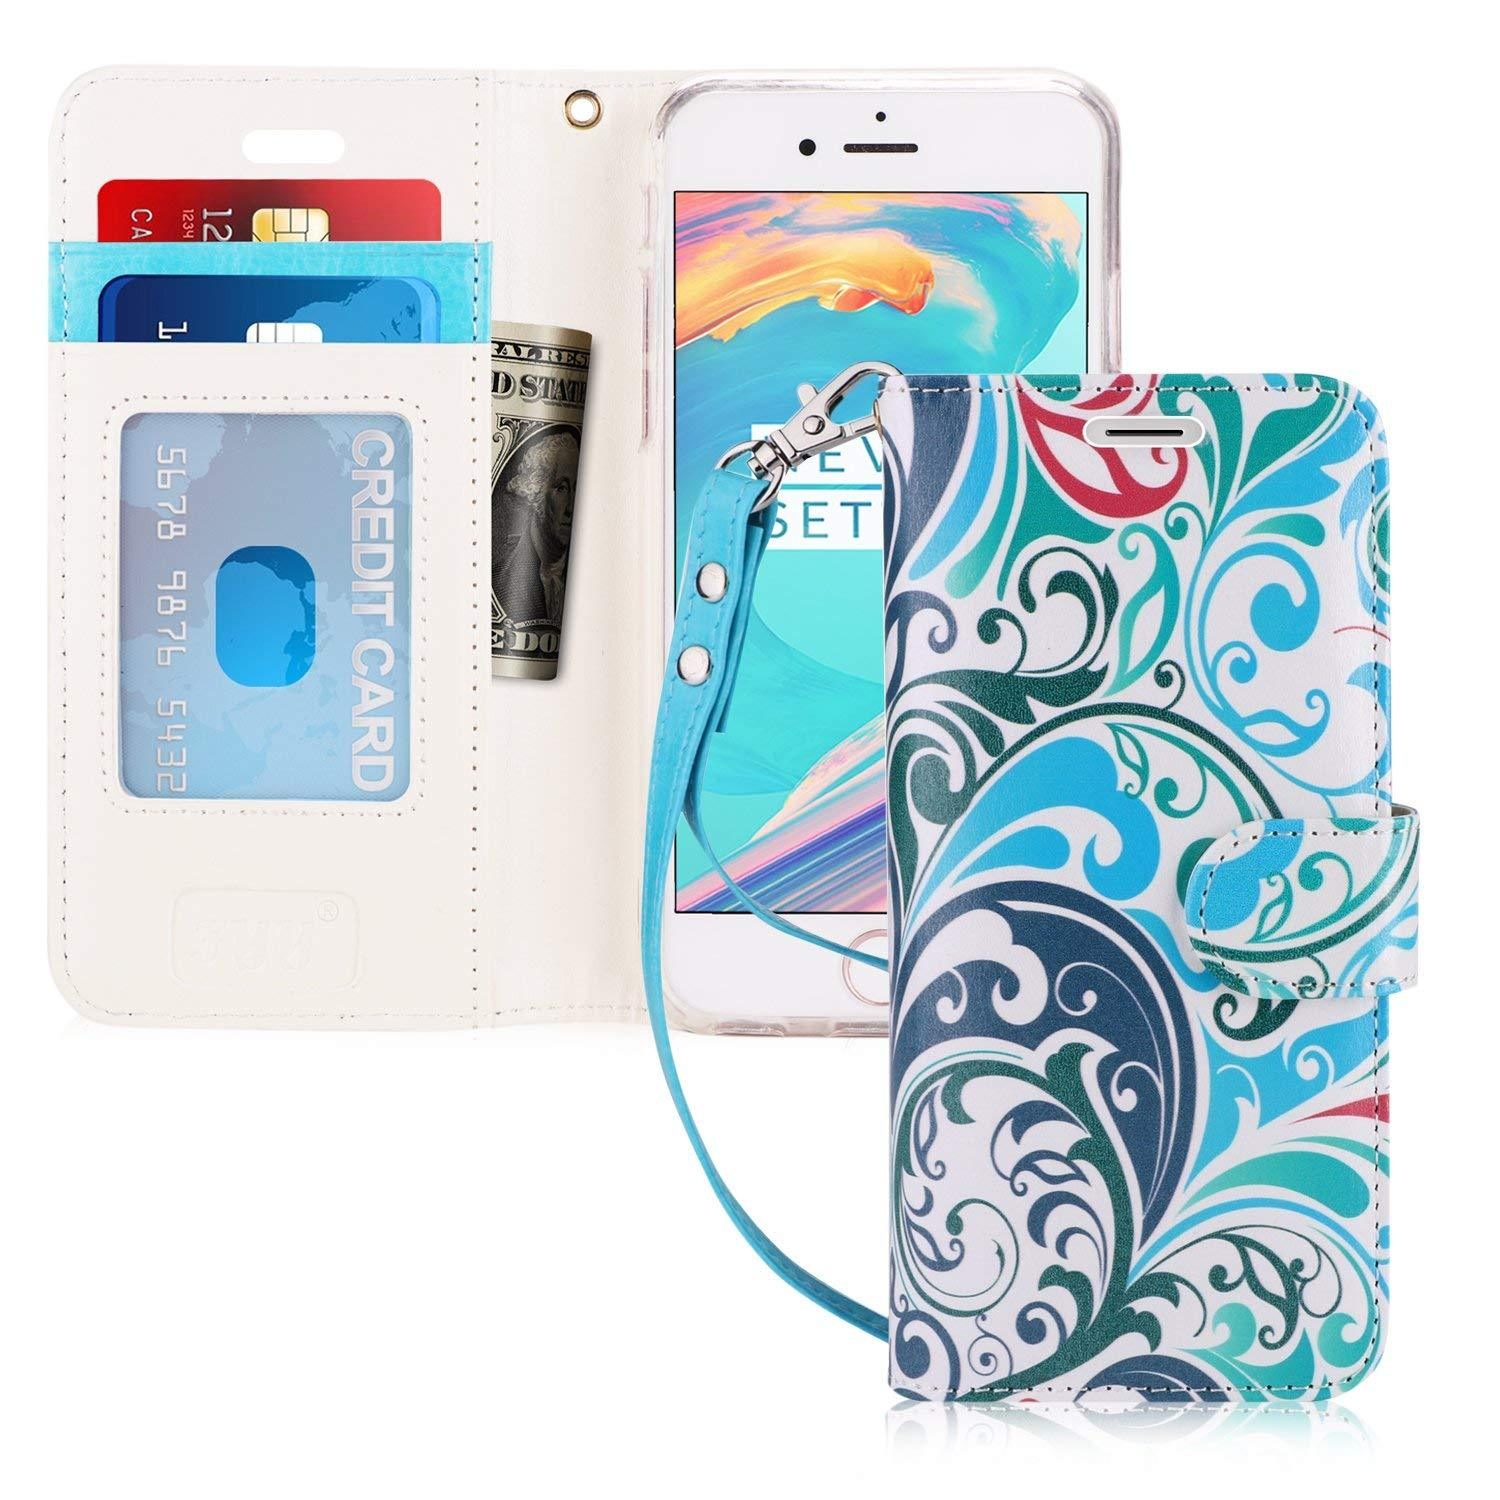 PU Leather Wallet Case for iPhone 6/6S